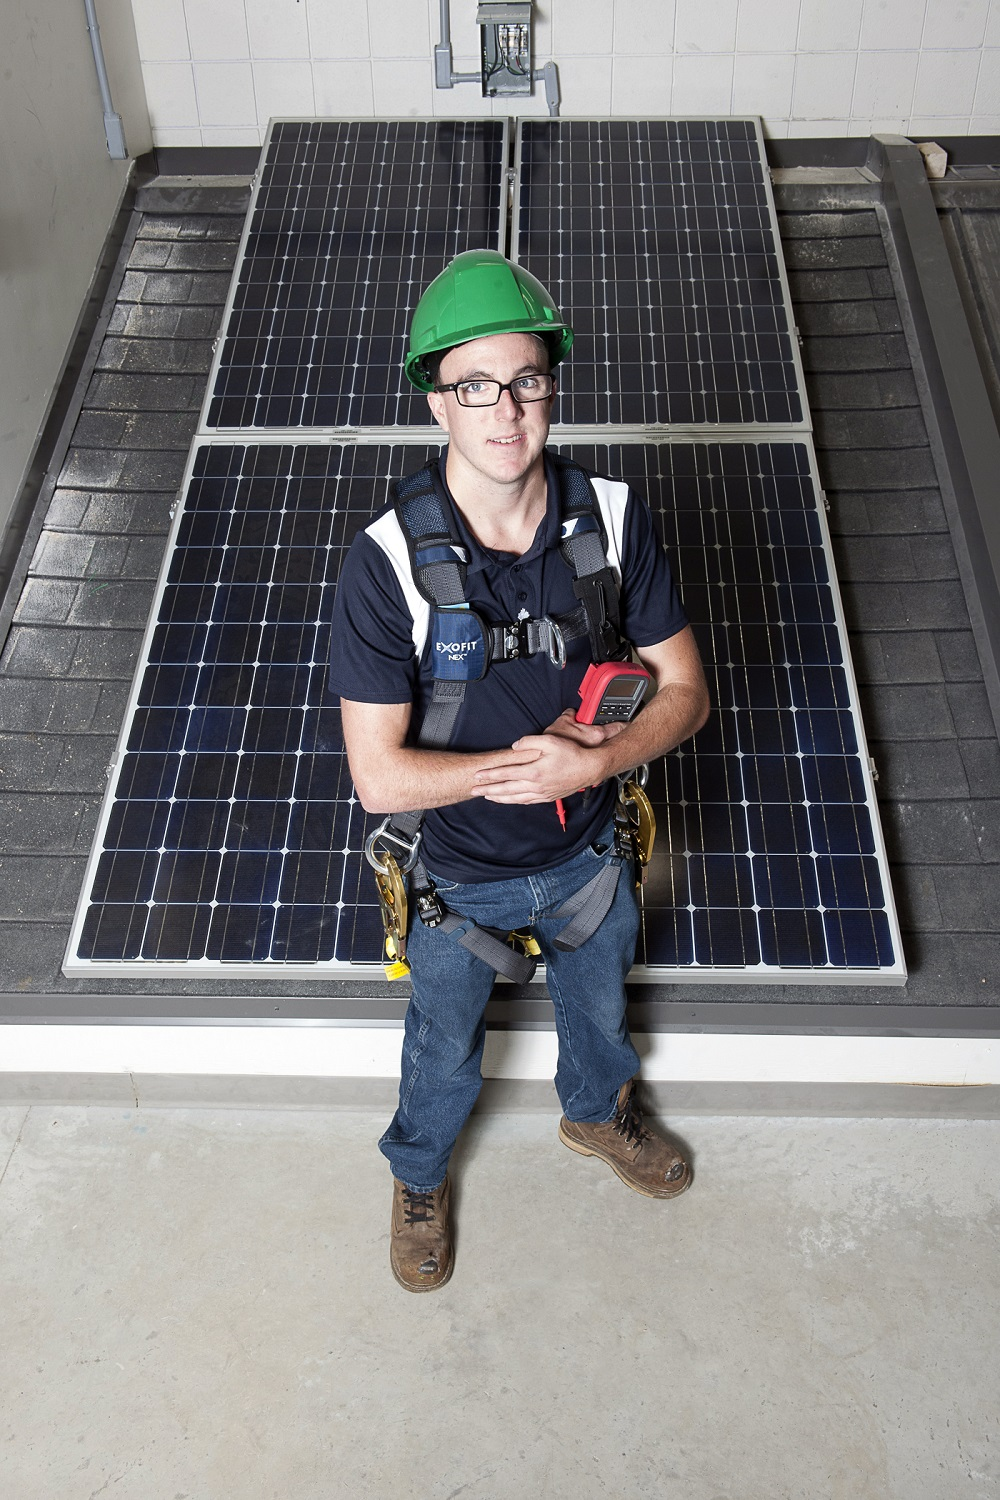 Student and solar panel